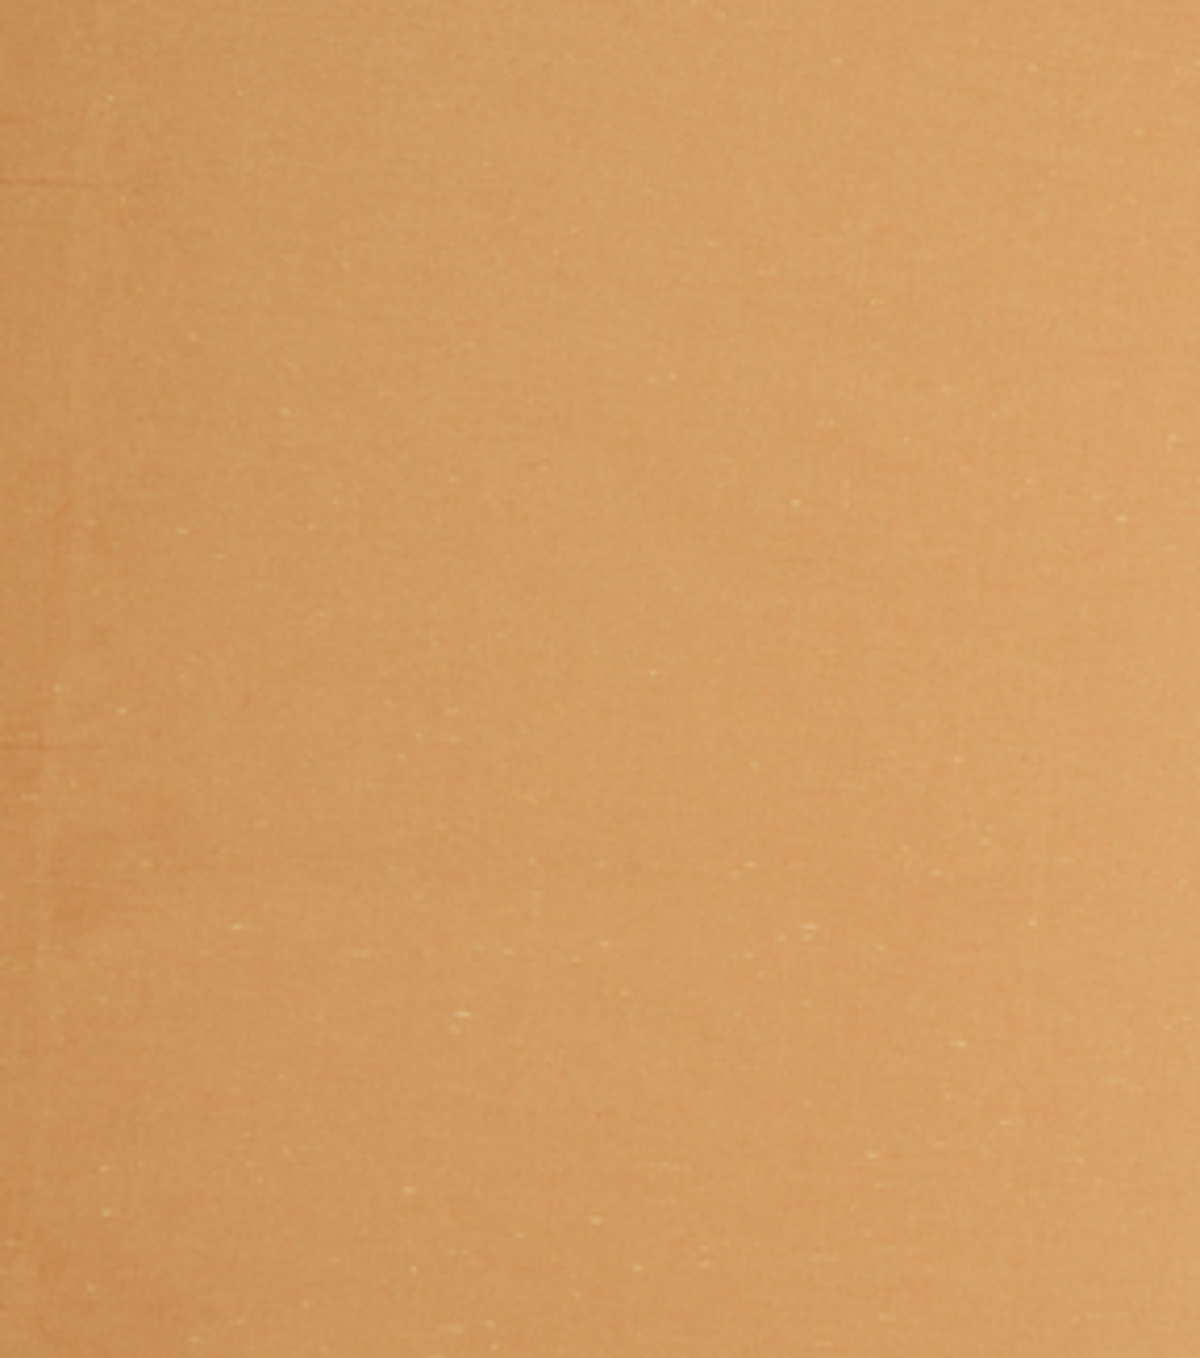 Home Decor 8\u0022x8\u0022 Fabric Swatch-Signature Series Airforce Apricot